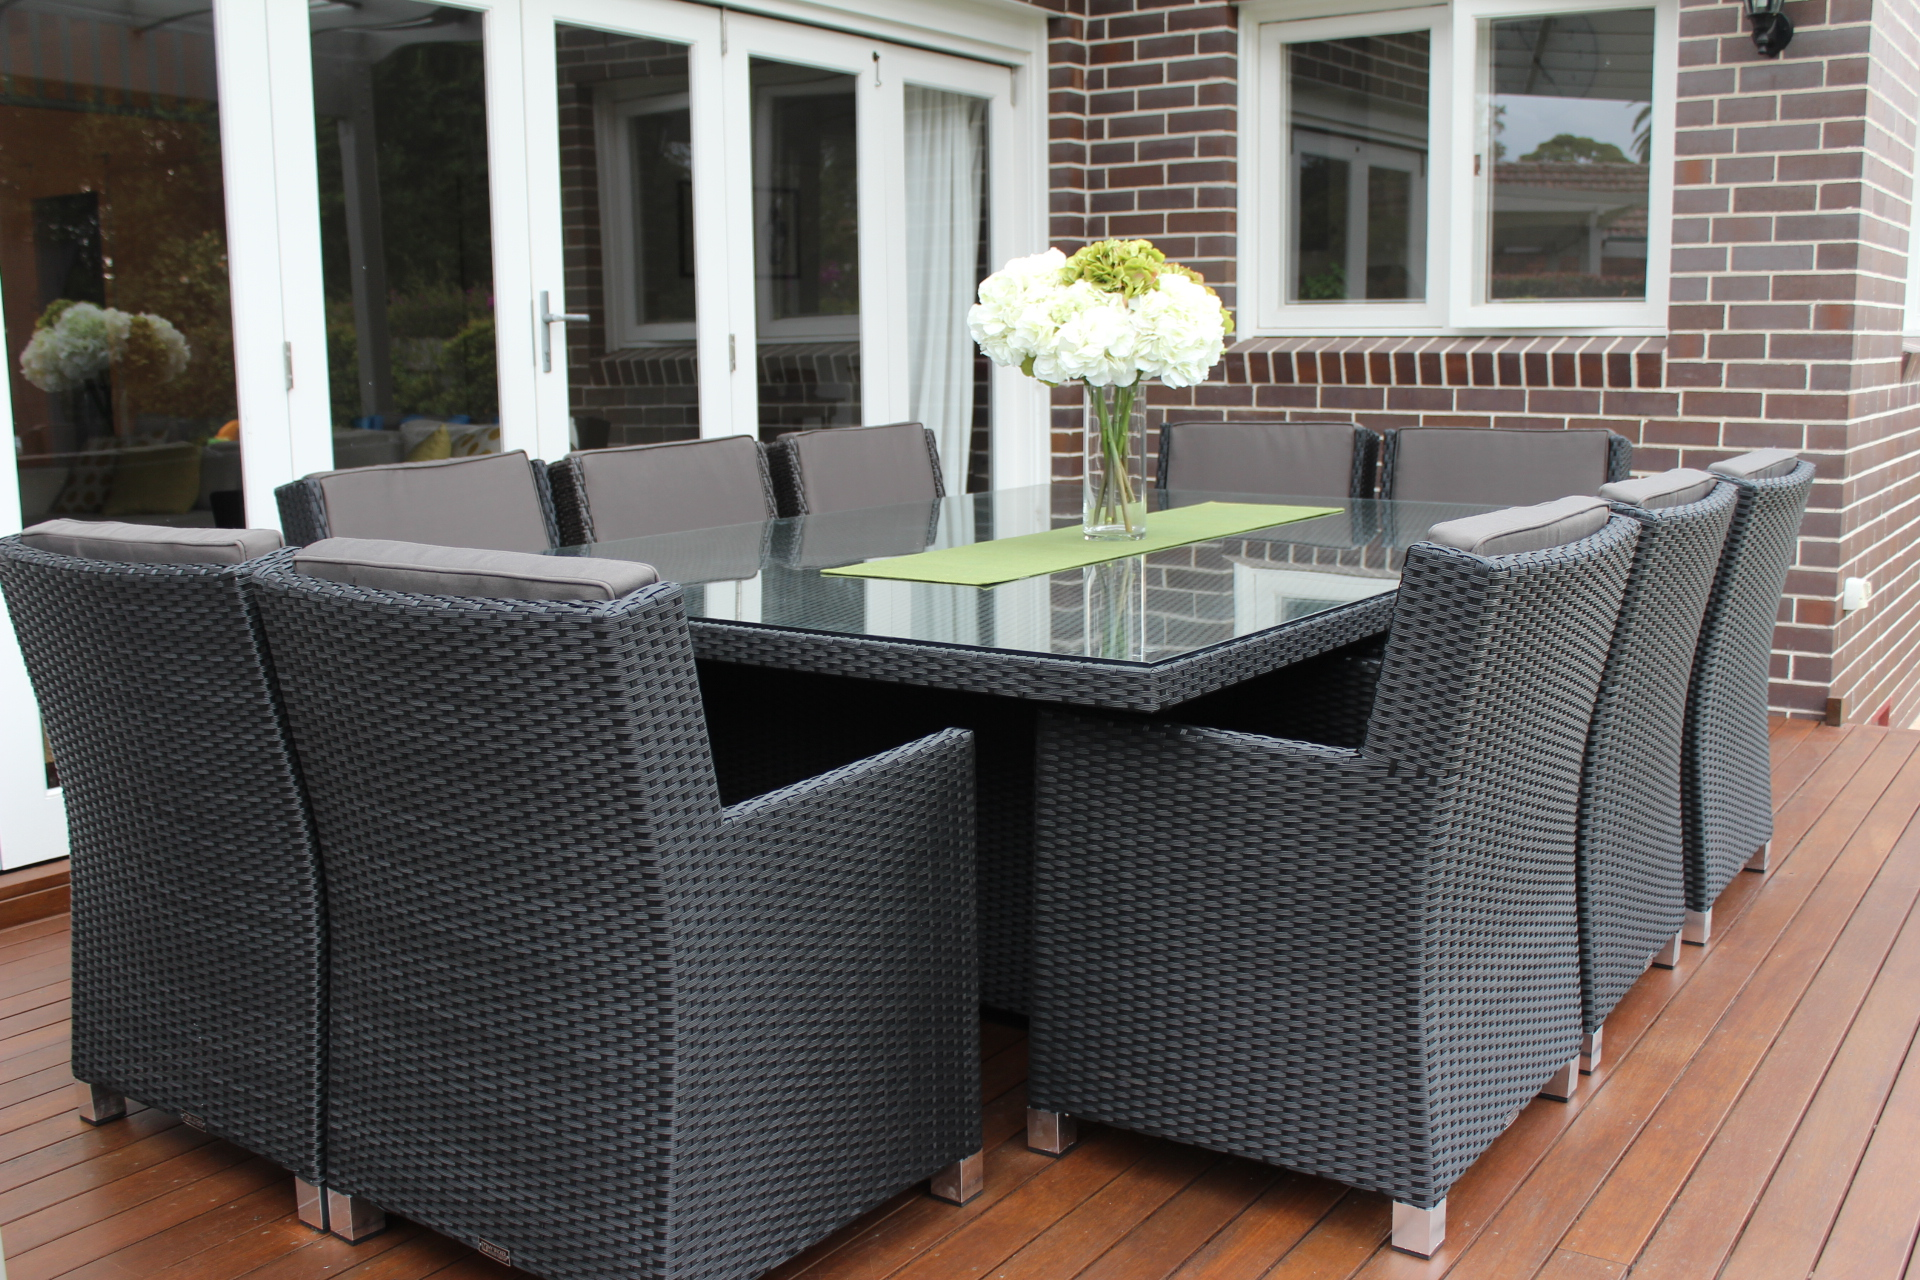 Royale wicker dining furniture settings for 12 seater dining table sydney